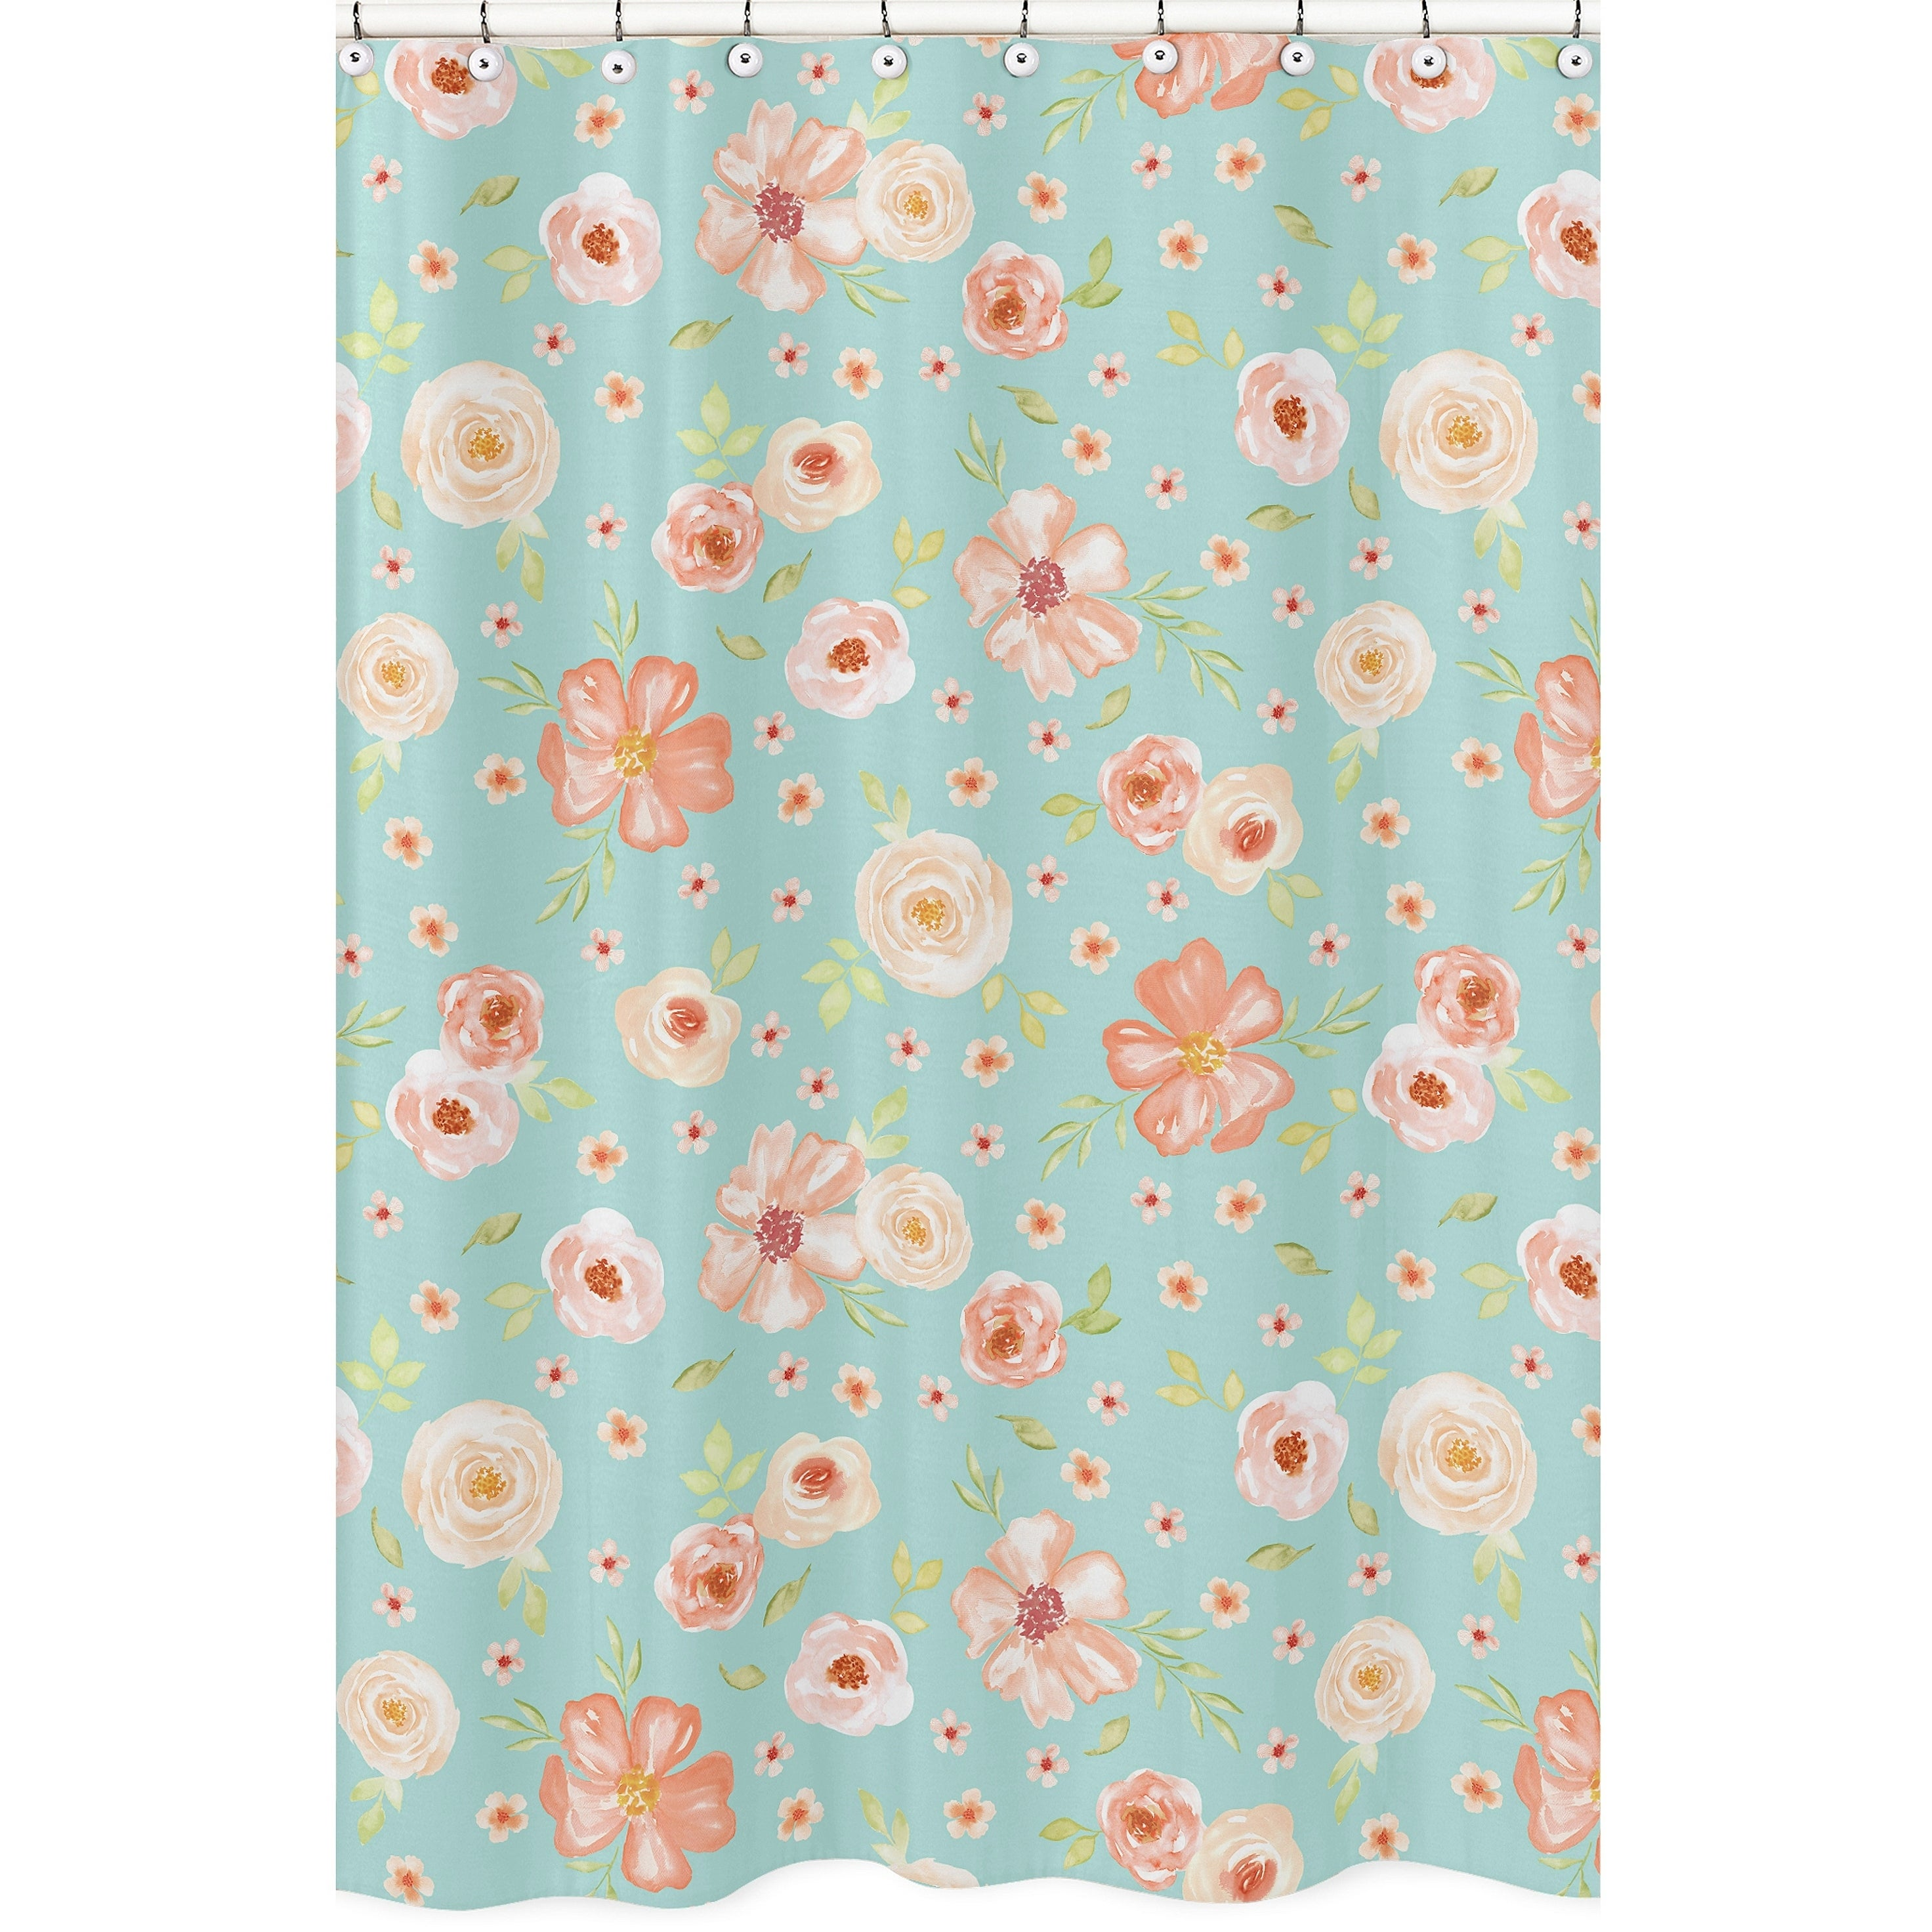 Shop Sweet Jojo Designs Turquoise And Peach Watercolor Floral Collection Bathroom Fabric Bath Shower Curtain Overstock 22378053